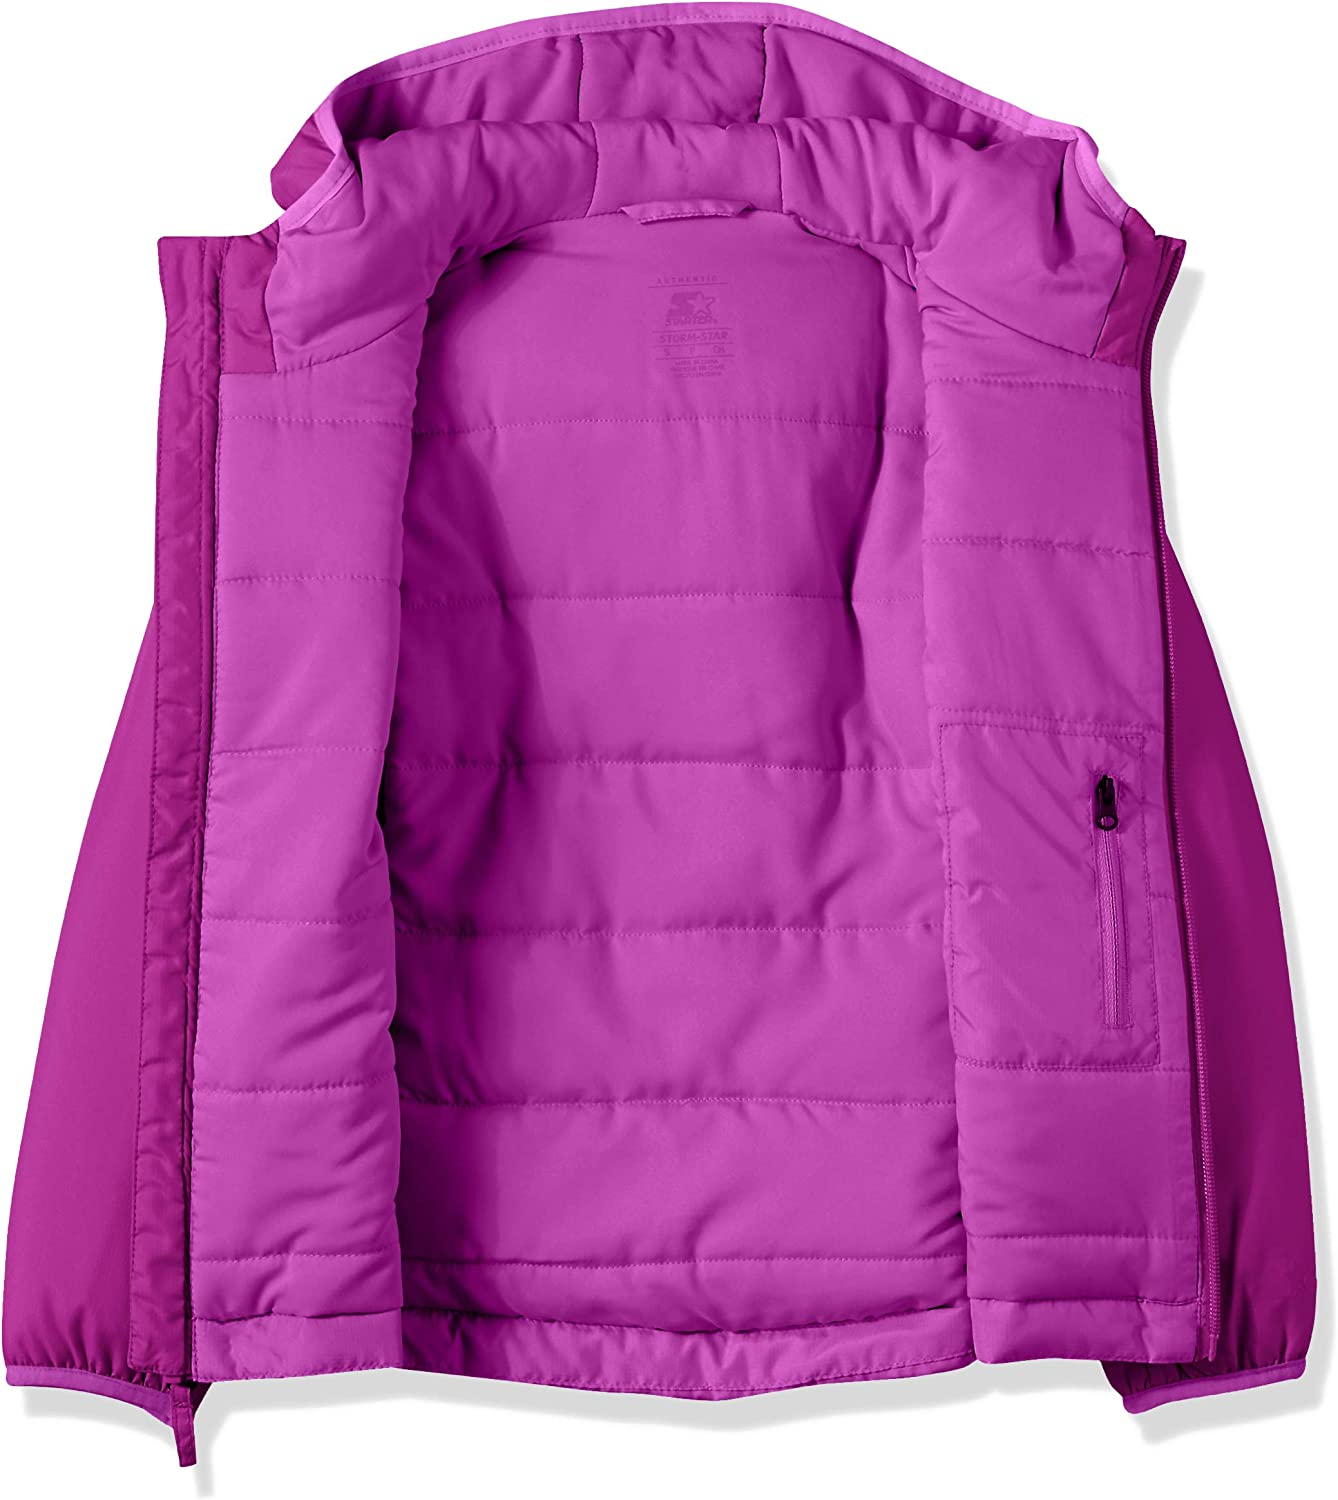 Exclusive Starter Girls Insulated Breathable Jacket